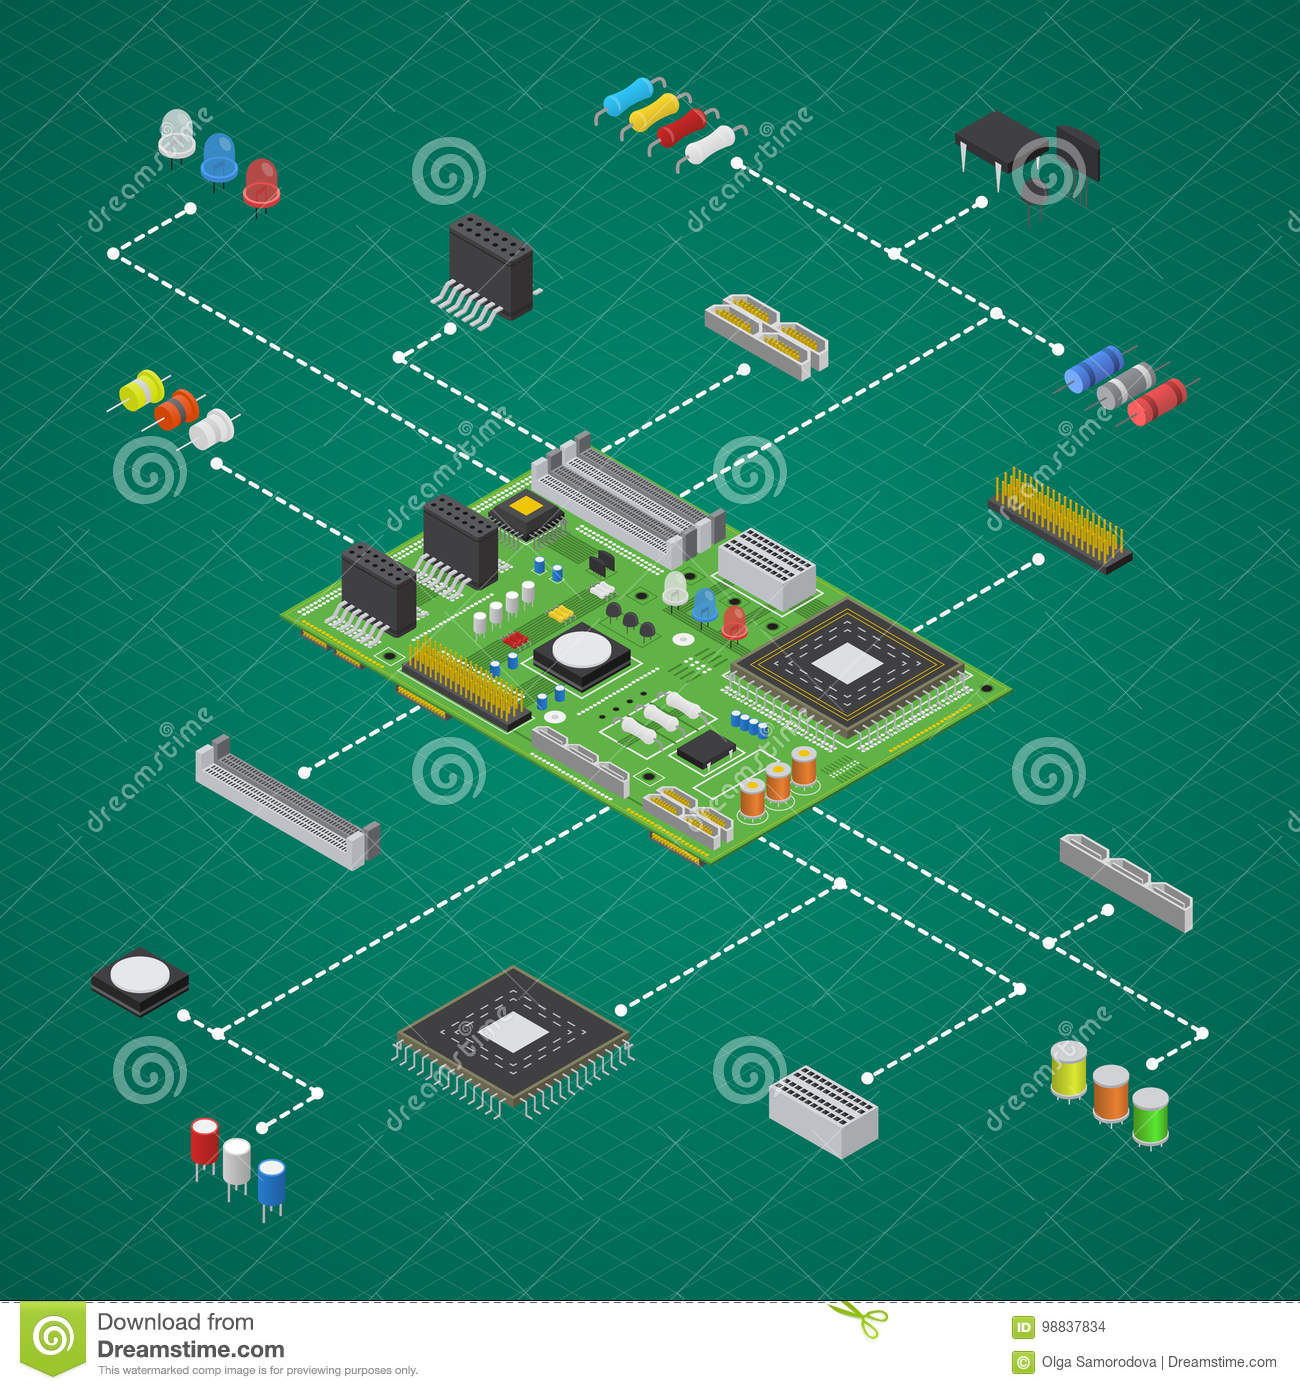 The Circuit Was Designed To Illustrate The Operation Of An Electronic